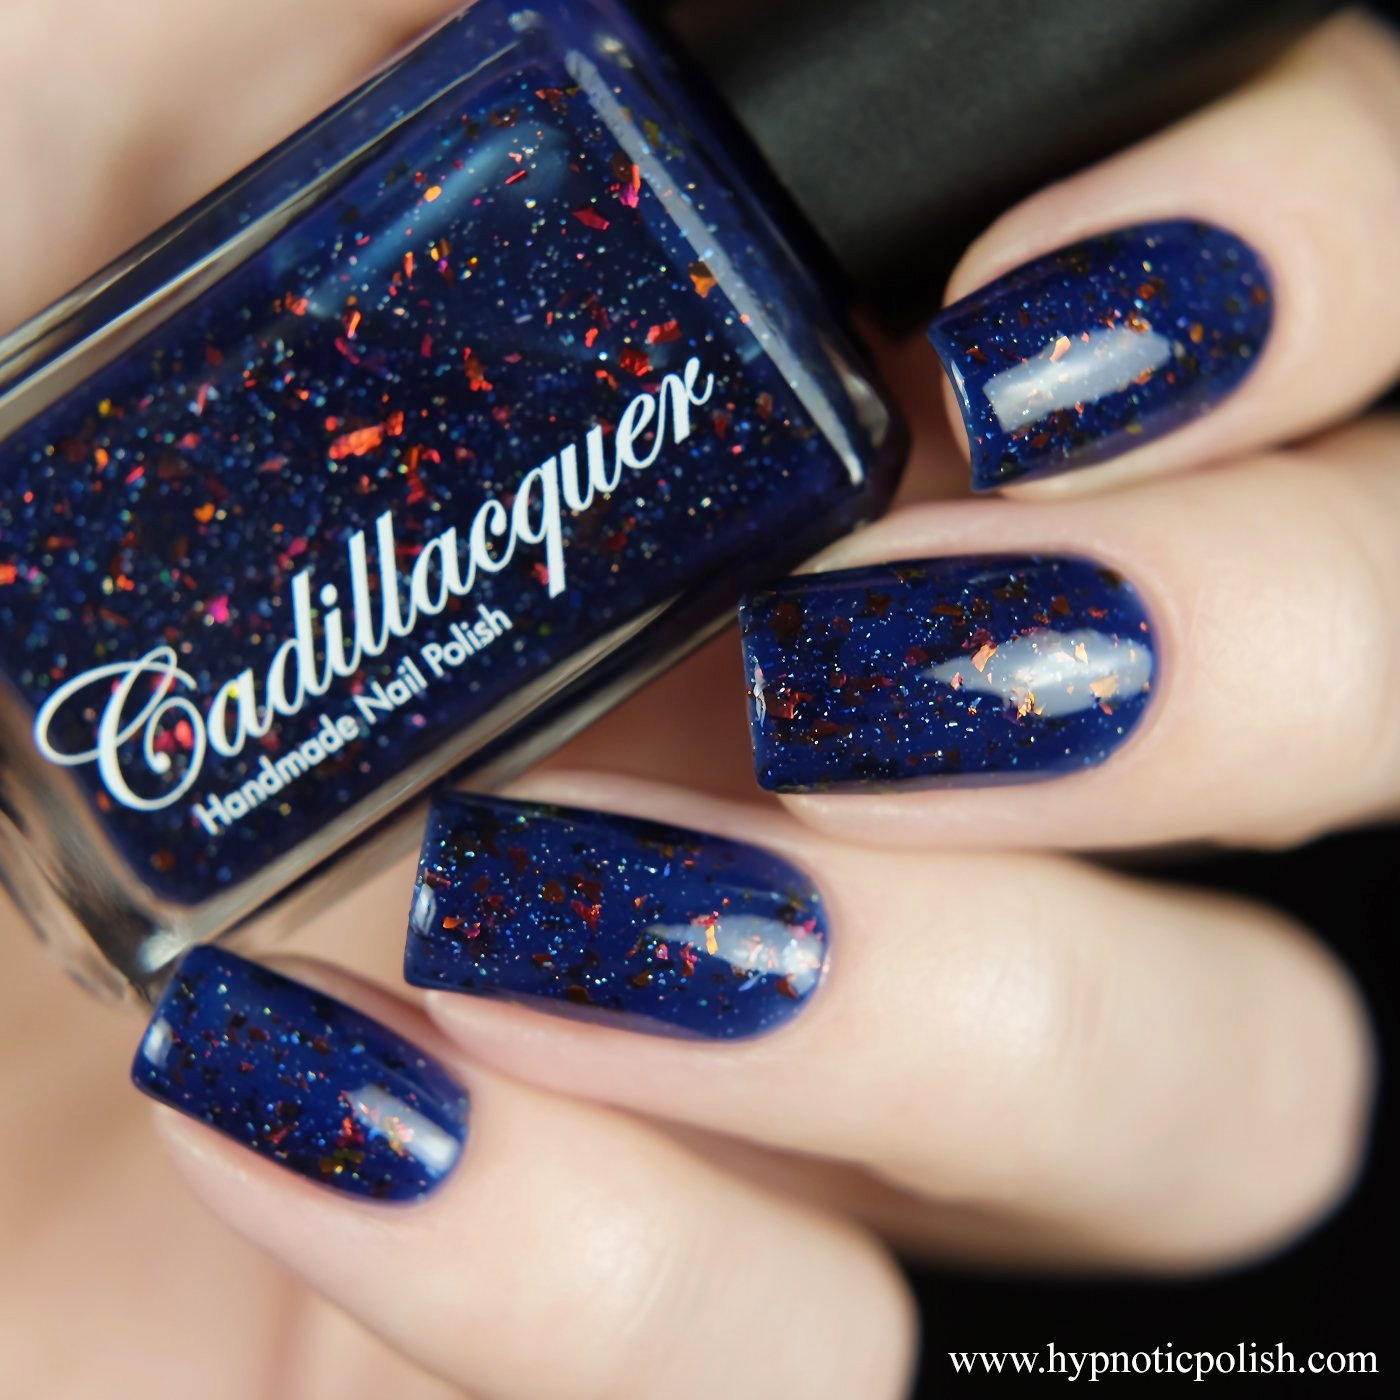 Cadillacquer - Touch The Stars - Store Exclusive